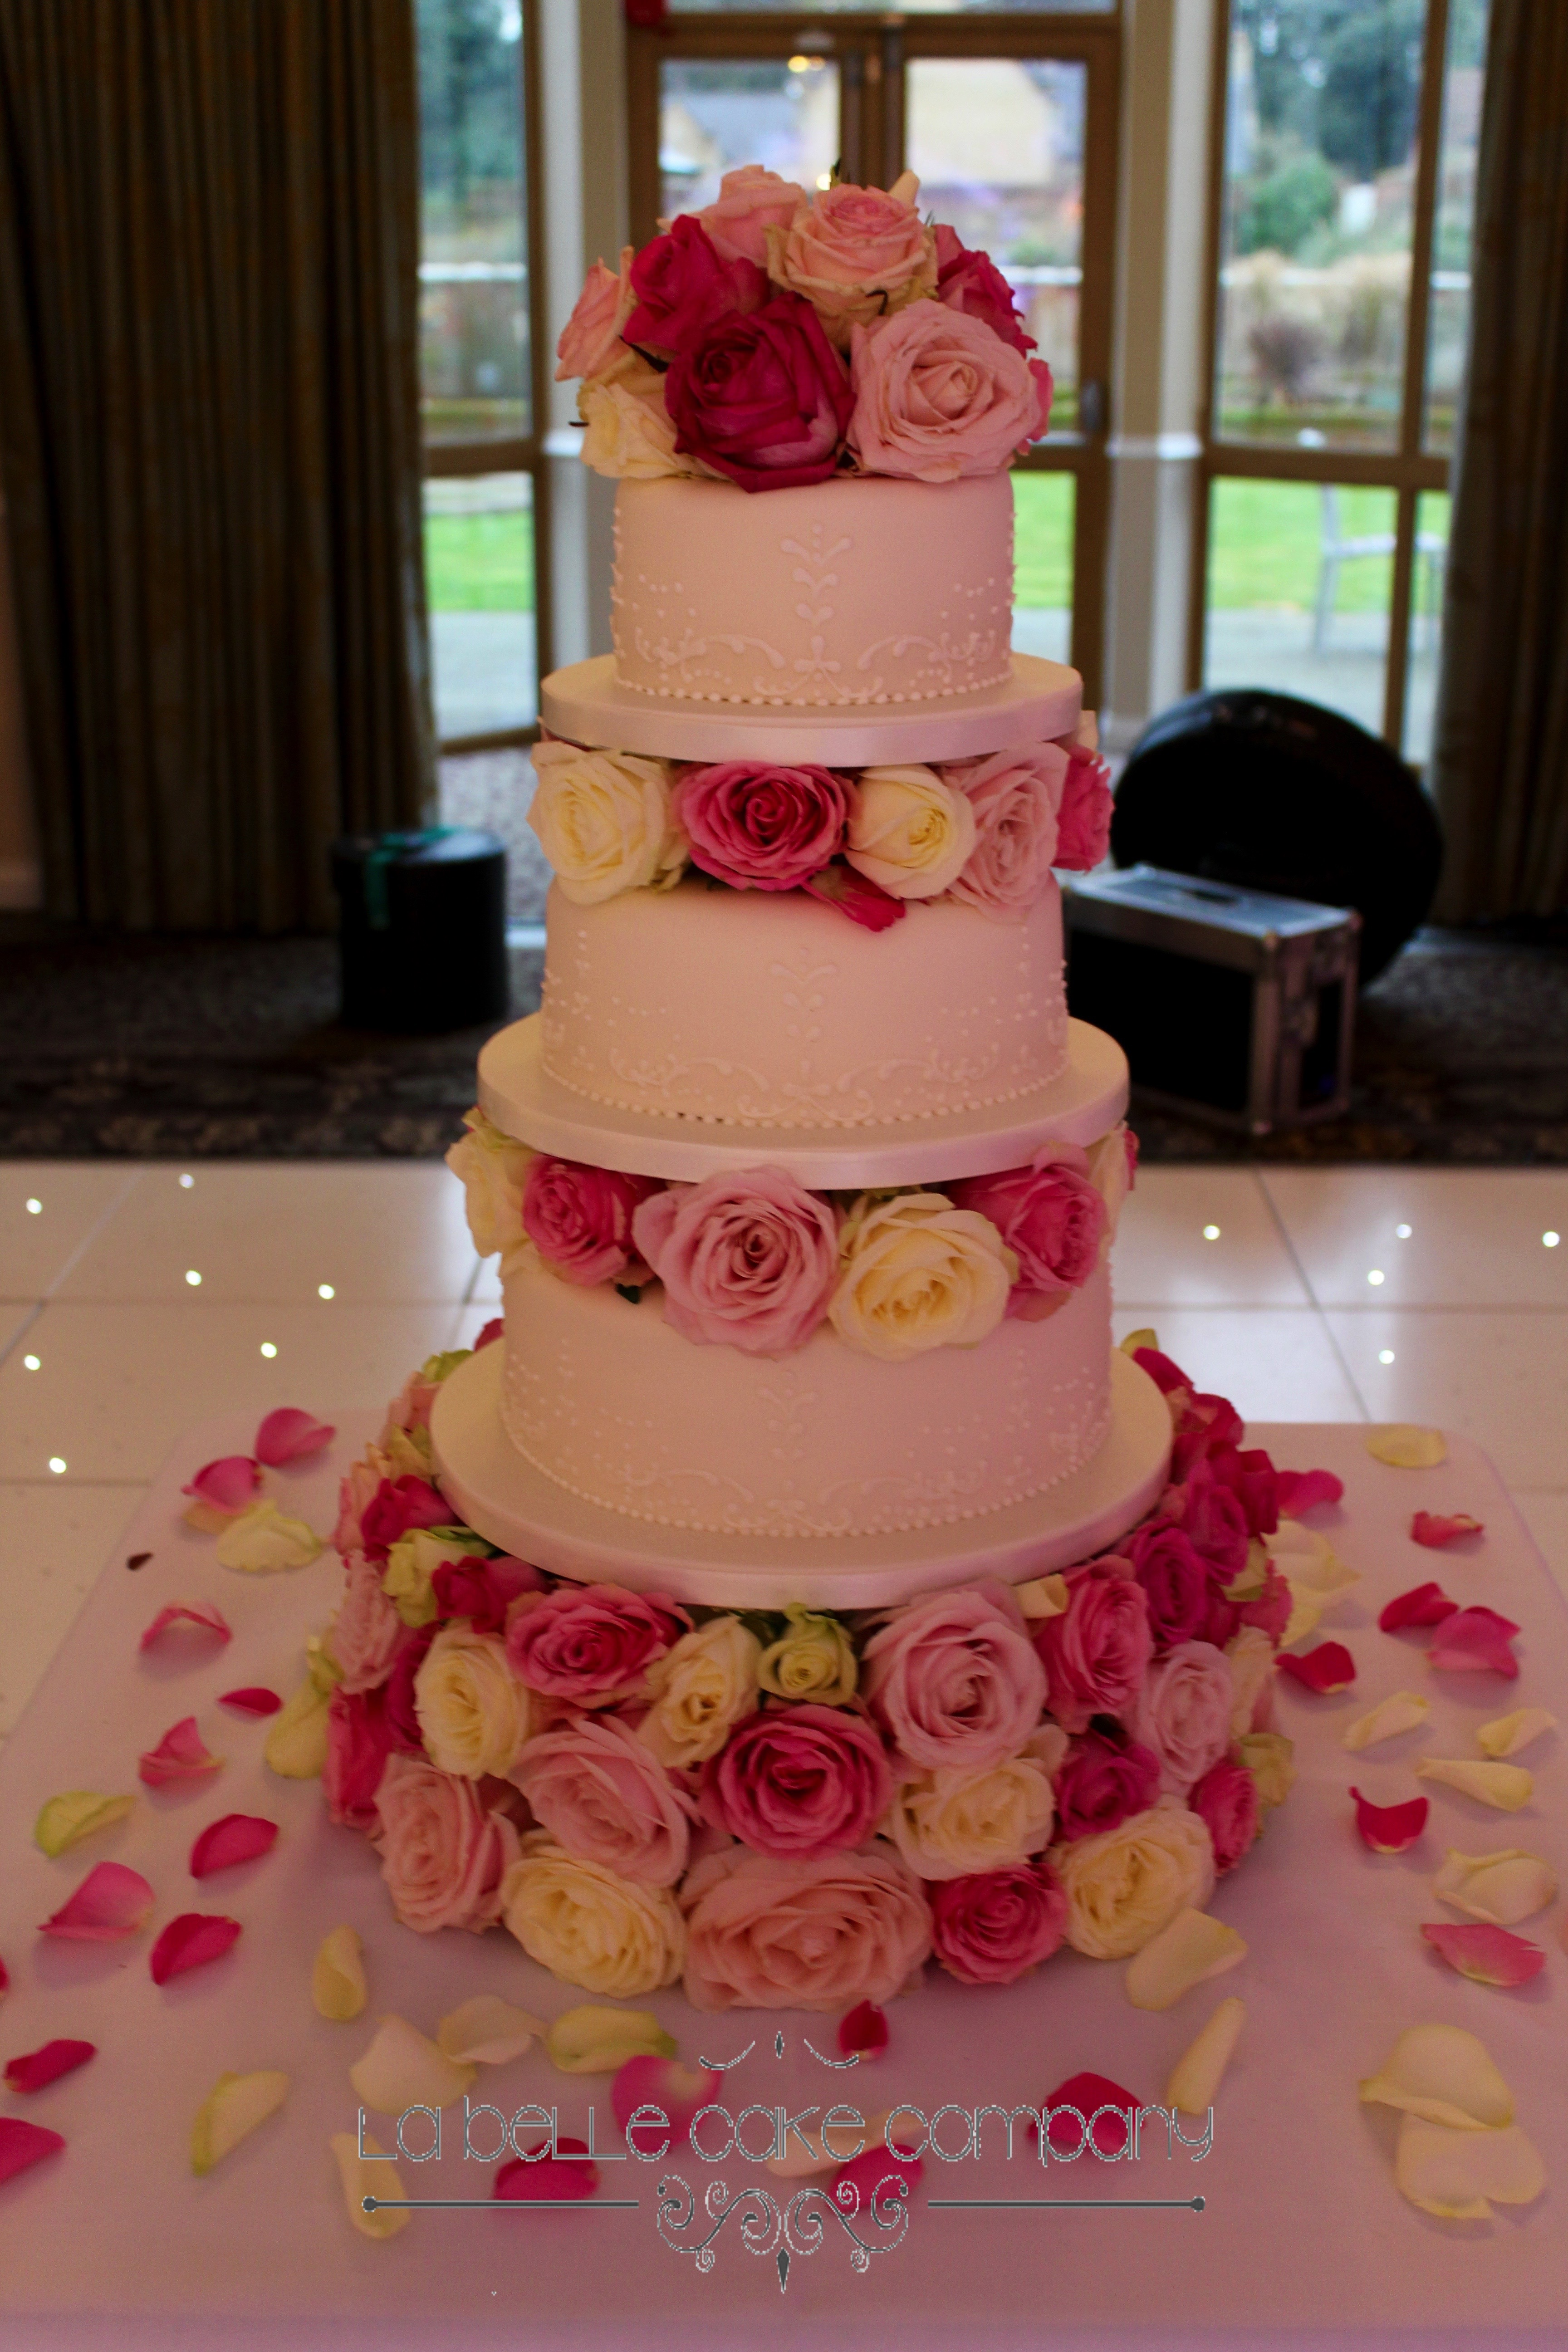 Cakes Blocked With Flowers Always Look Impressive And Add Extra Height To The Cake This Effect Can Be Achieved Using Fresh Sugar Even Silk